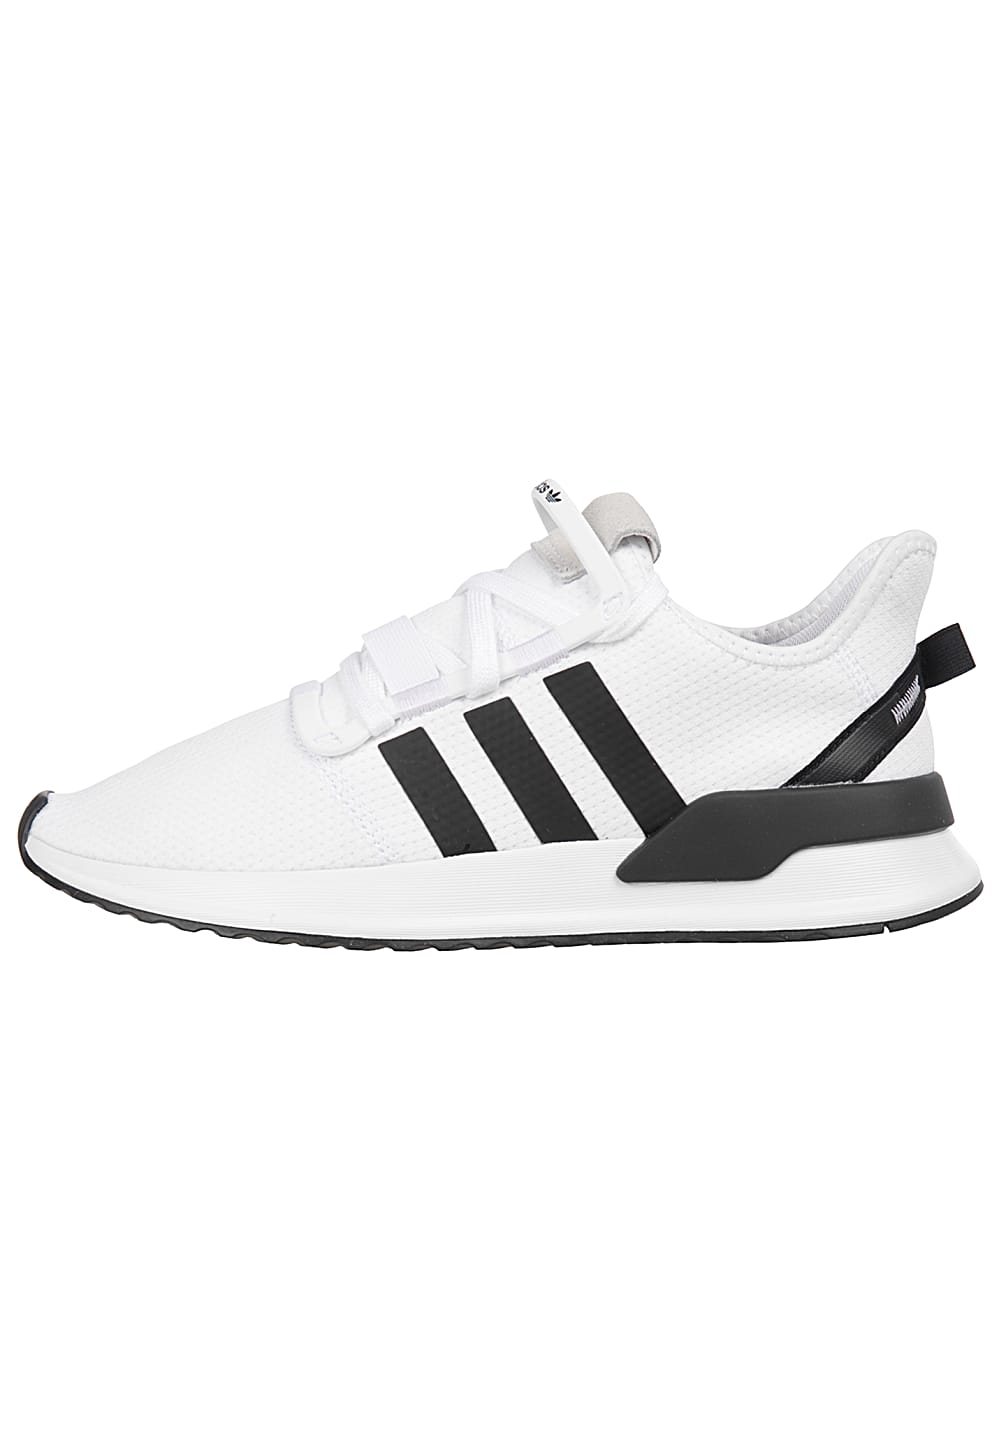 adidas Originals U_Path Run Sneaker für Herren Weiß